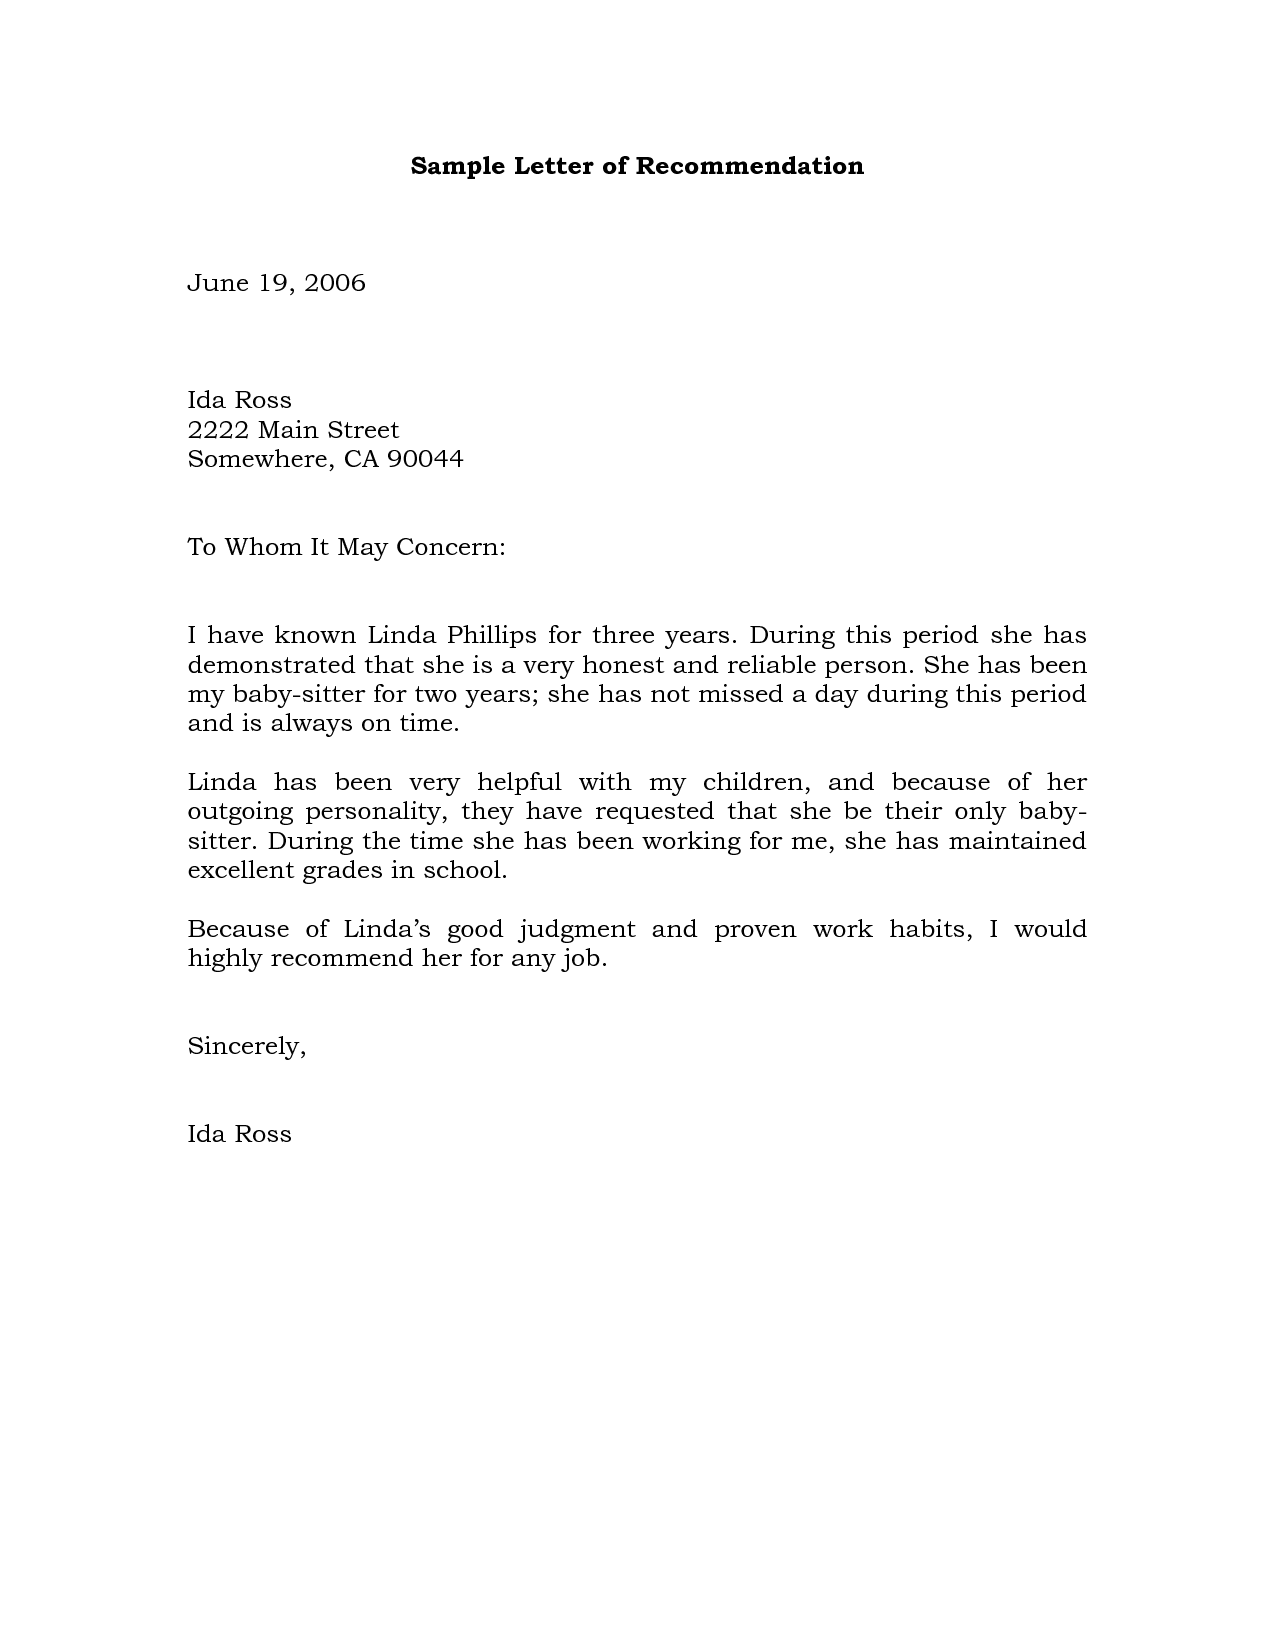 Sample Recommendation Letter Example  Personal Reference Letter Samples